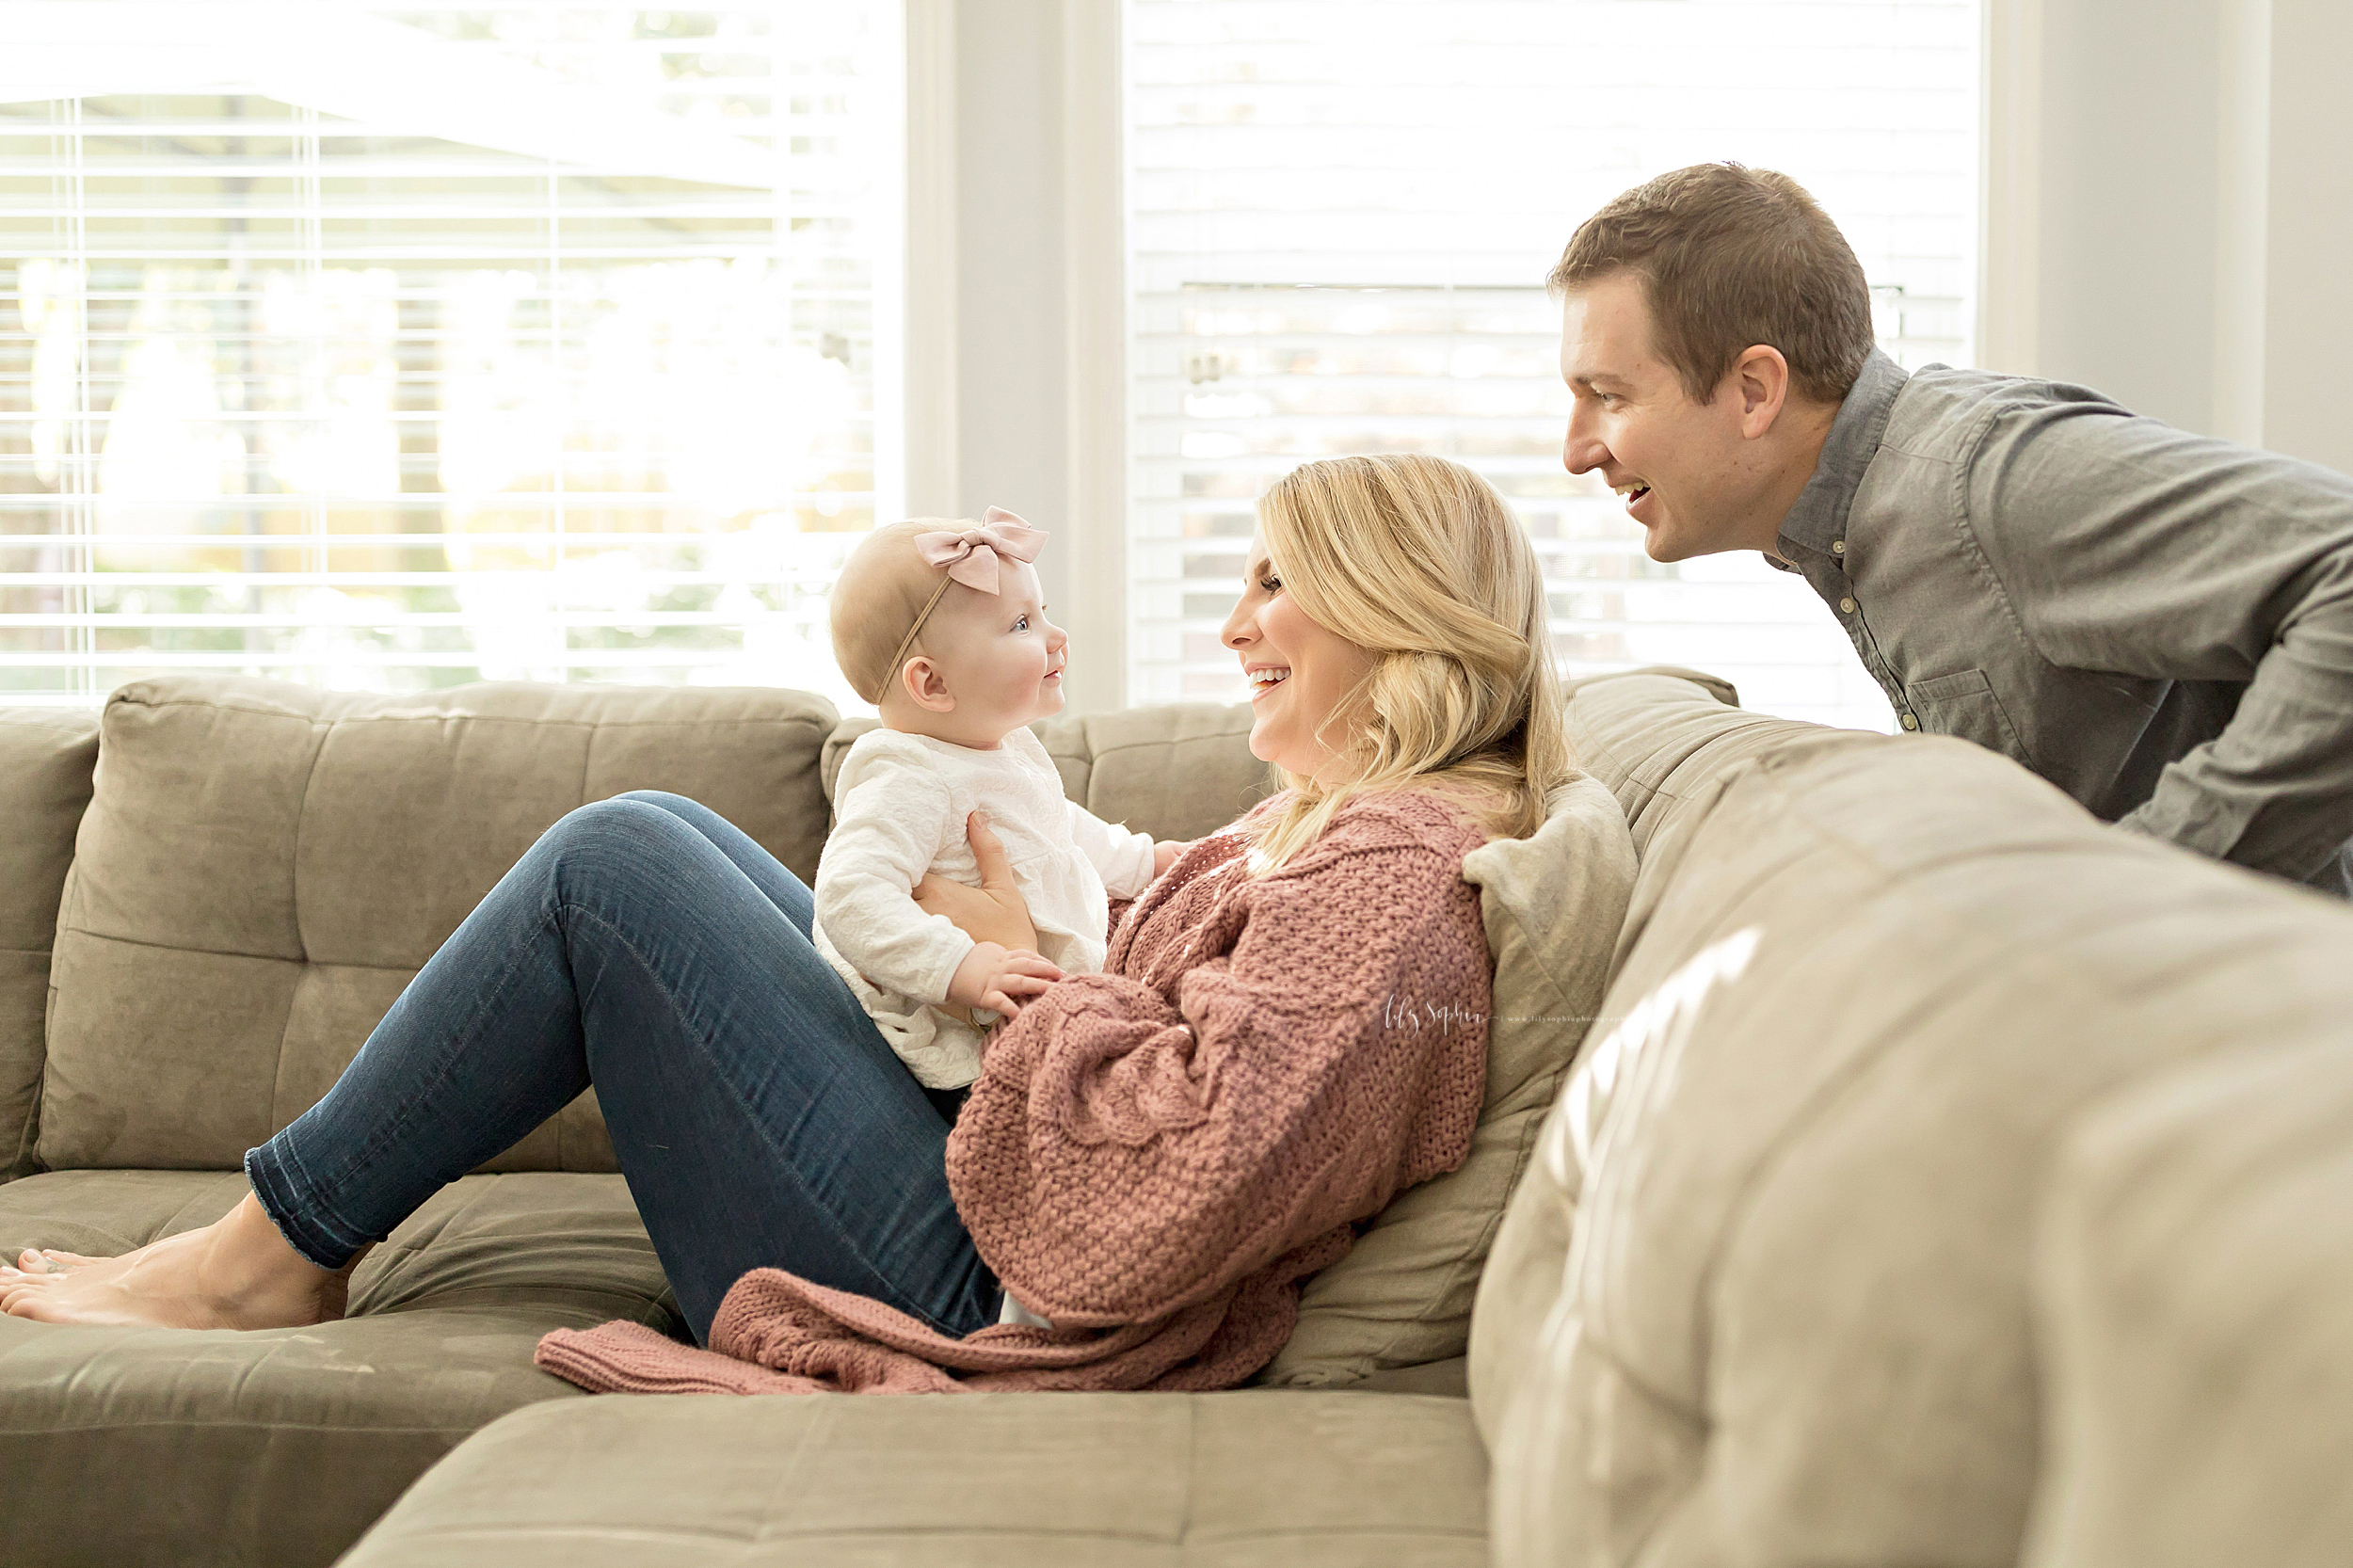 atlanta-midtown-brookhaven-ashford-dunwoody-virginia-highlands-roswell-decatur-lily-sophia-photography-in-home-six-month-milestone-family-lifestyle-session-sandy-springs_0653.jpg